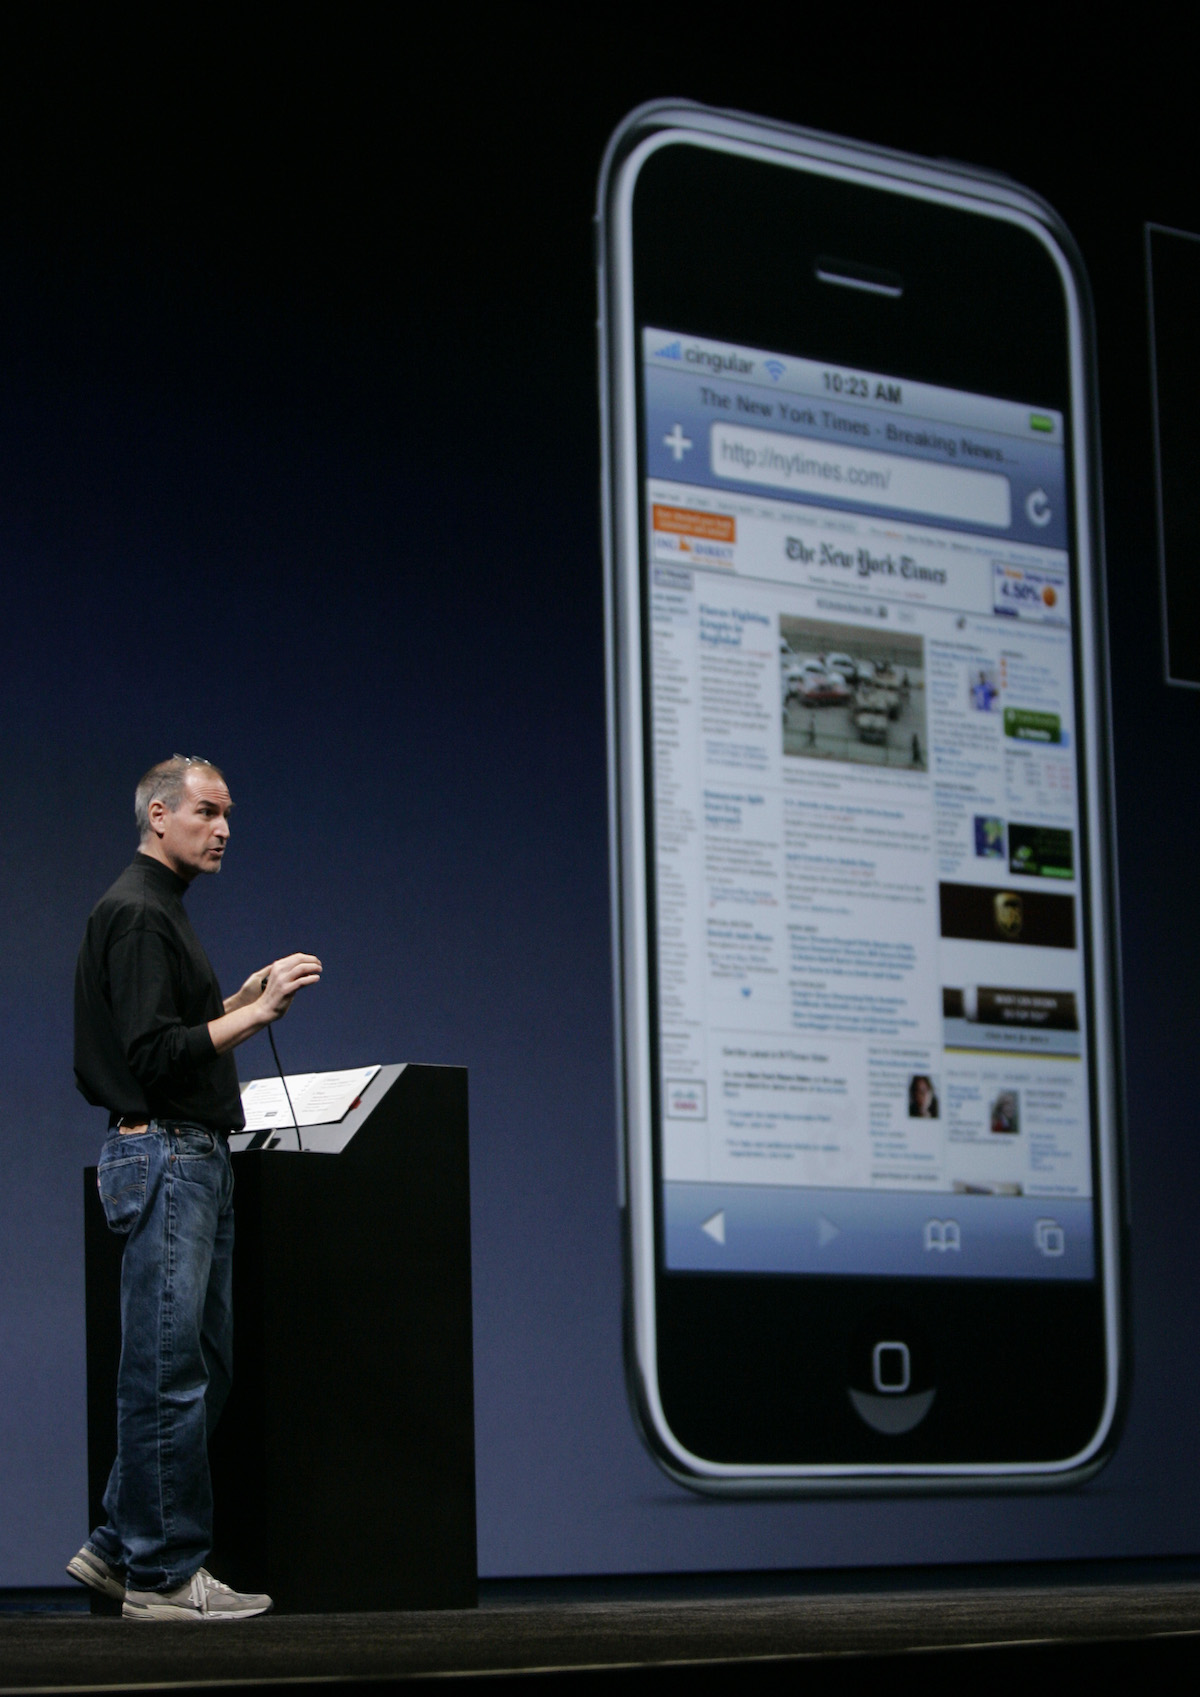 steve-jobs-iphone-nytimes-2007-ap